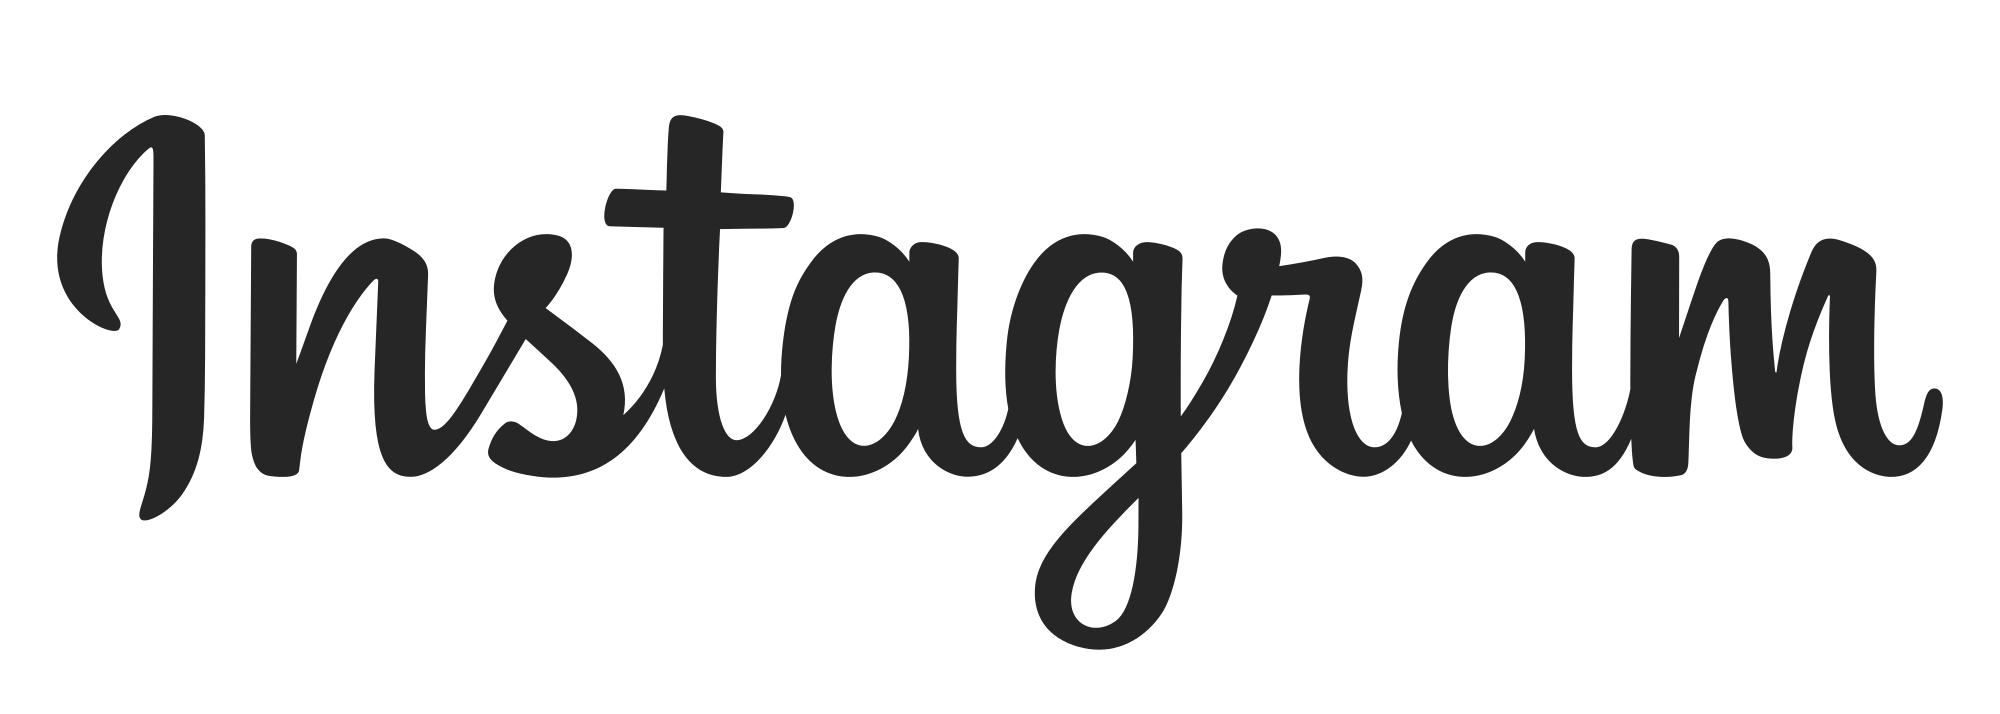 Instagram Logo Png Text.